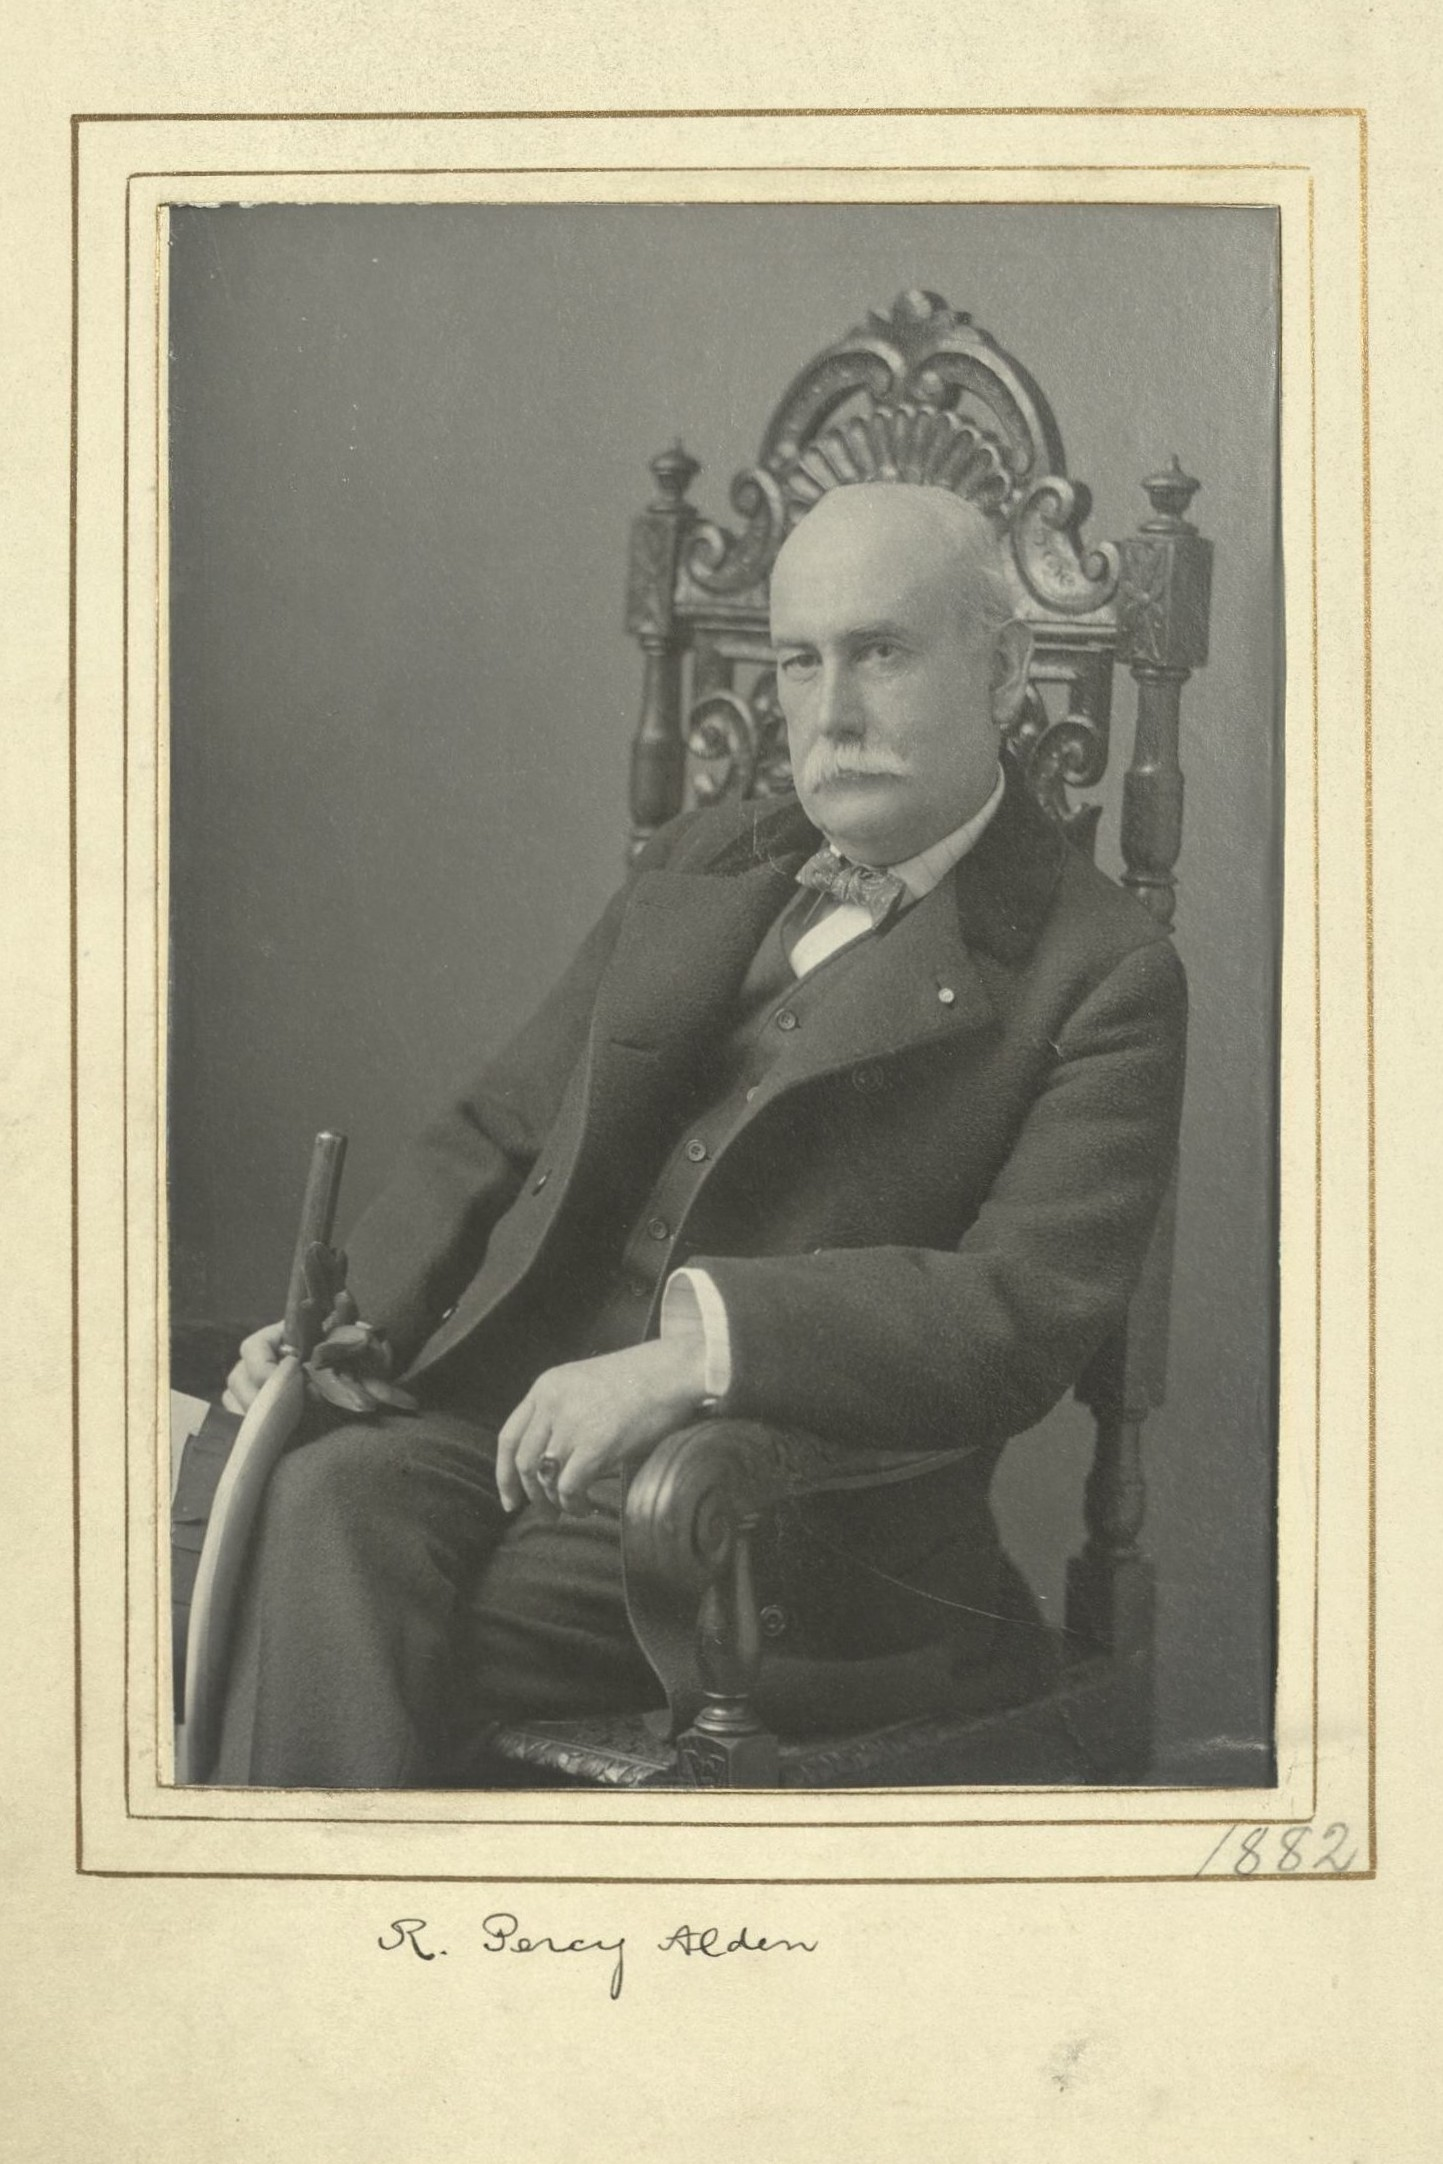 Member portrait of R. Percy Alden